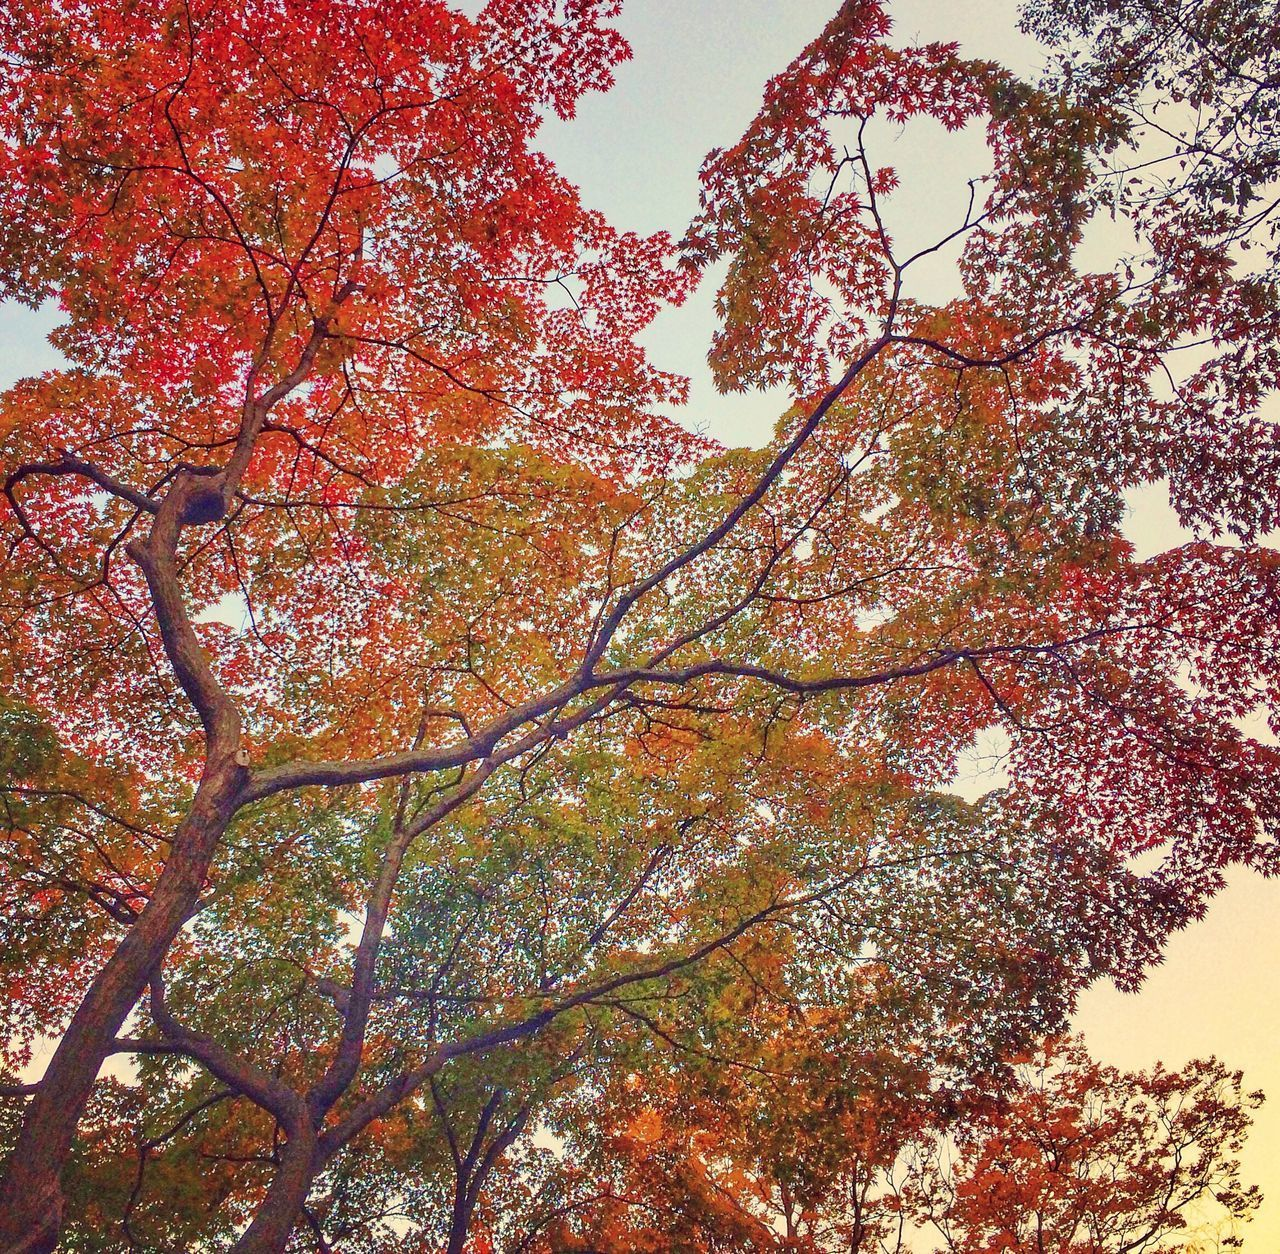 LOW ANGLE VIEW OF FRESH AUTUMN TREE AGAINST SKY